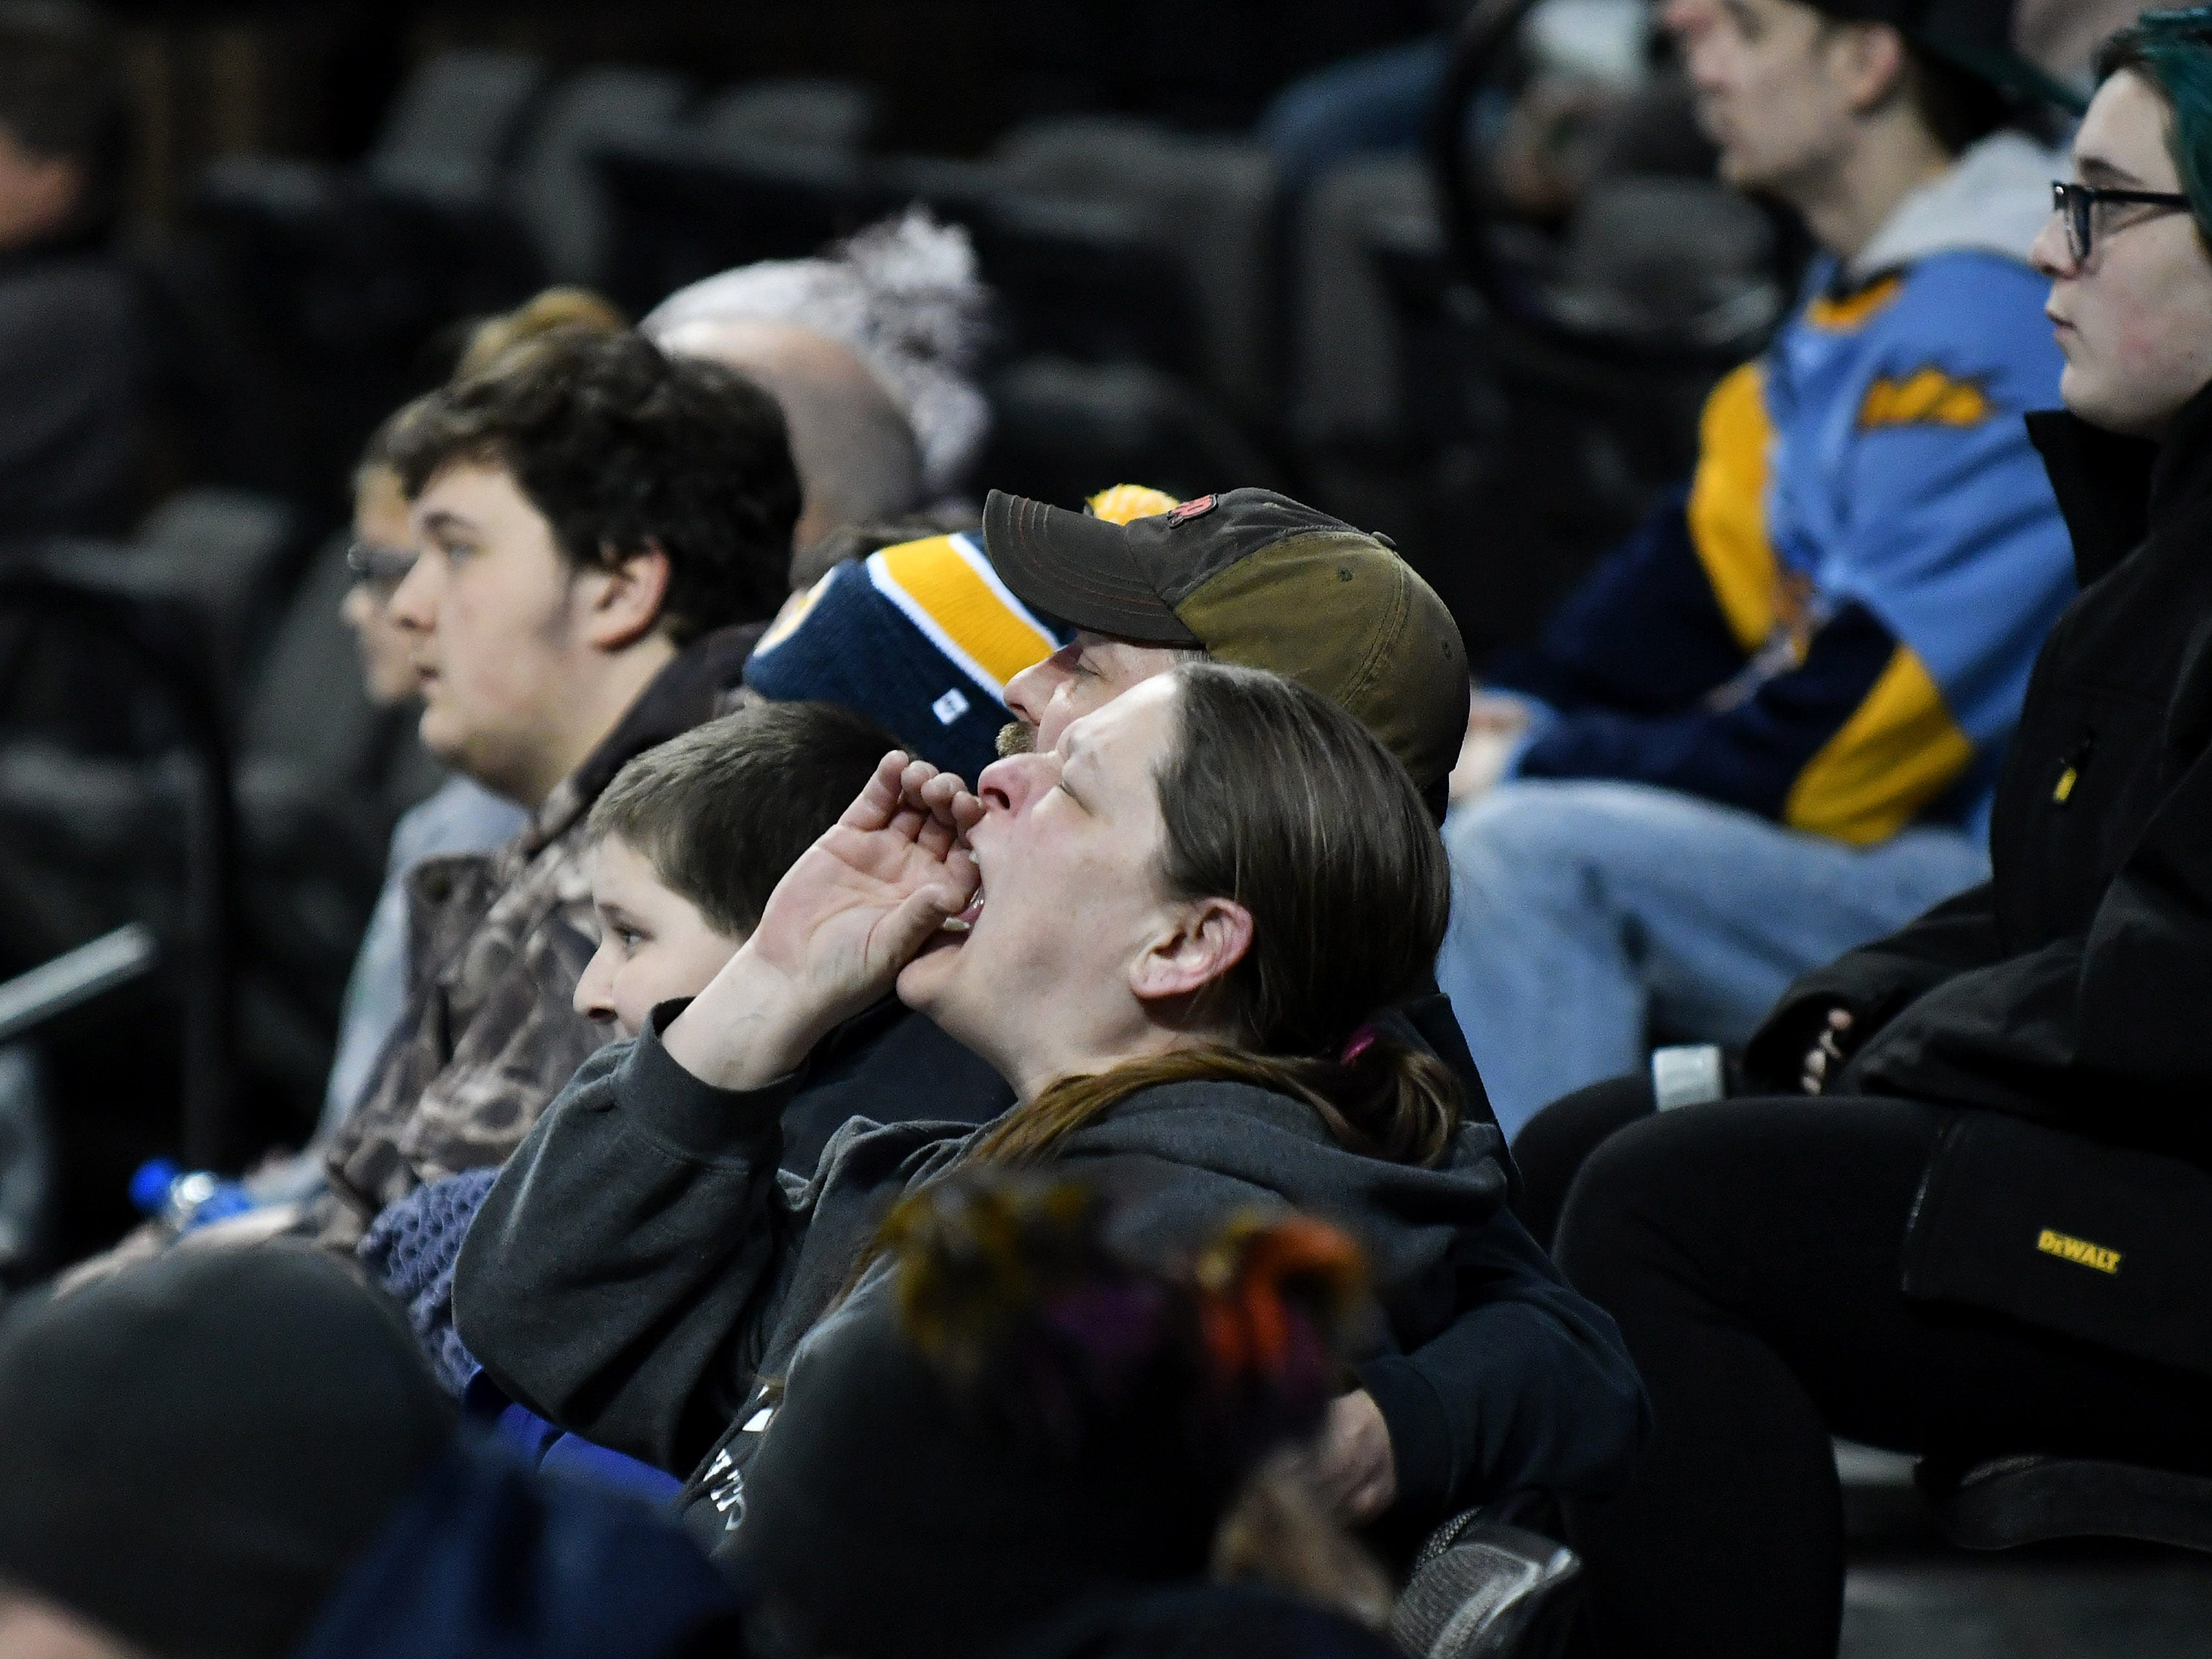 Wendy Laubenthal of Perrysburg, Ohio, hollers in the first period.  Laubenthal was at the game with Jon Burkett, to her right; son, Paul Laubenthal, 12; and seated behind her is her daughter, Emily Laubenthal, 15, far right.